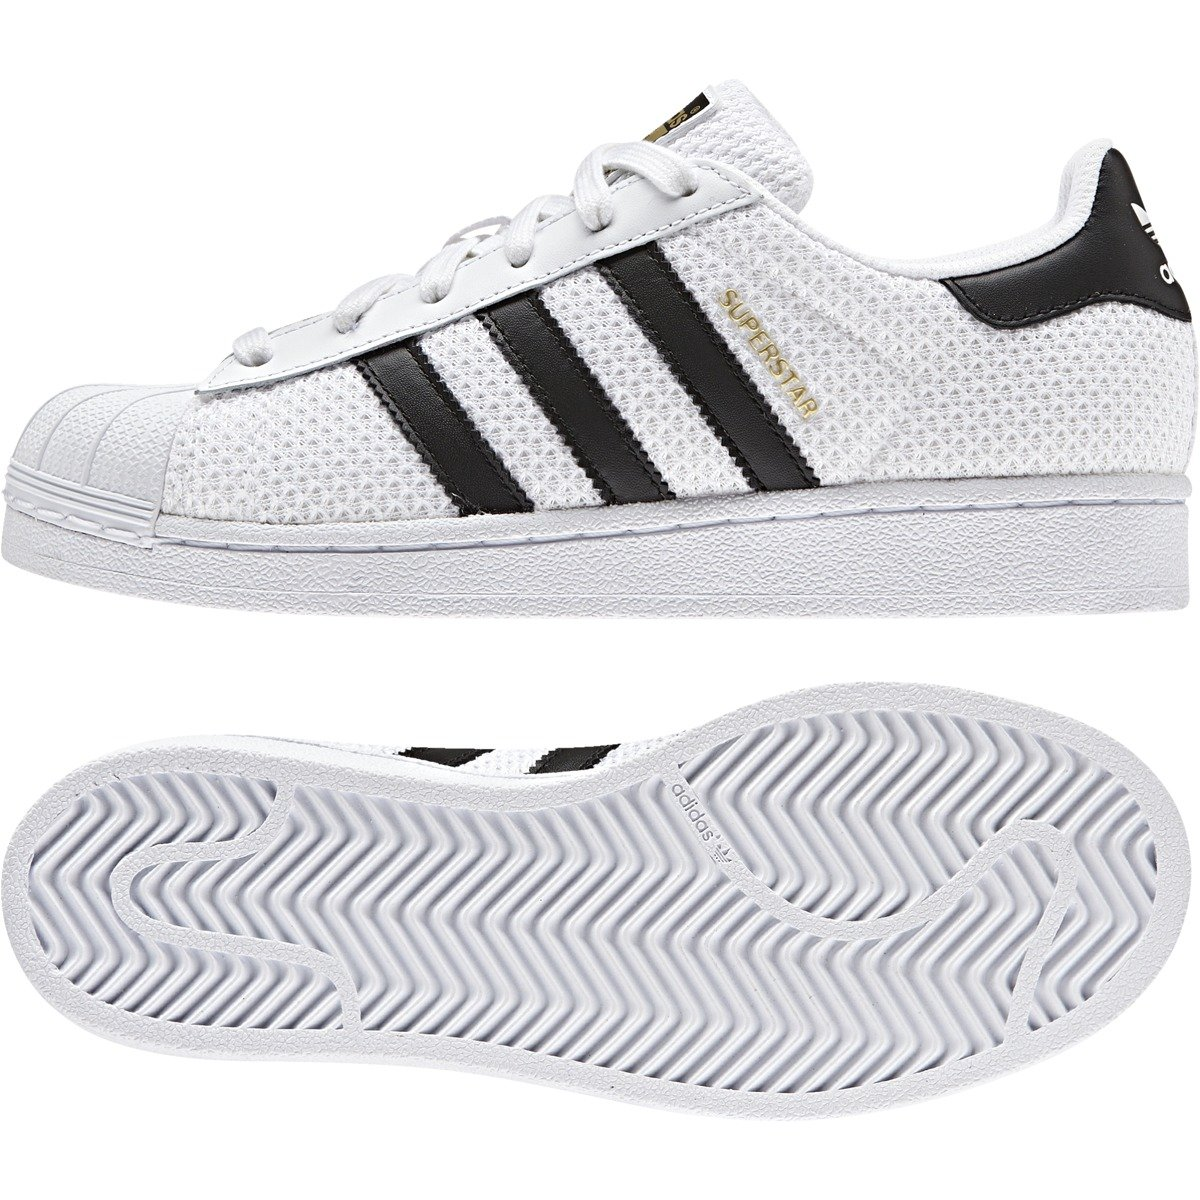 Tenders Sneakers Shoes WomenPortal Adidas Basket Freddie Mercury For 534RjLqA